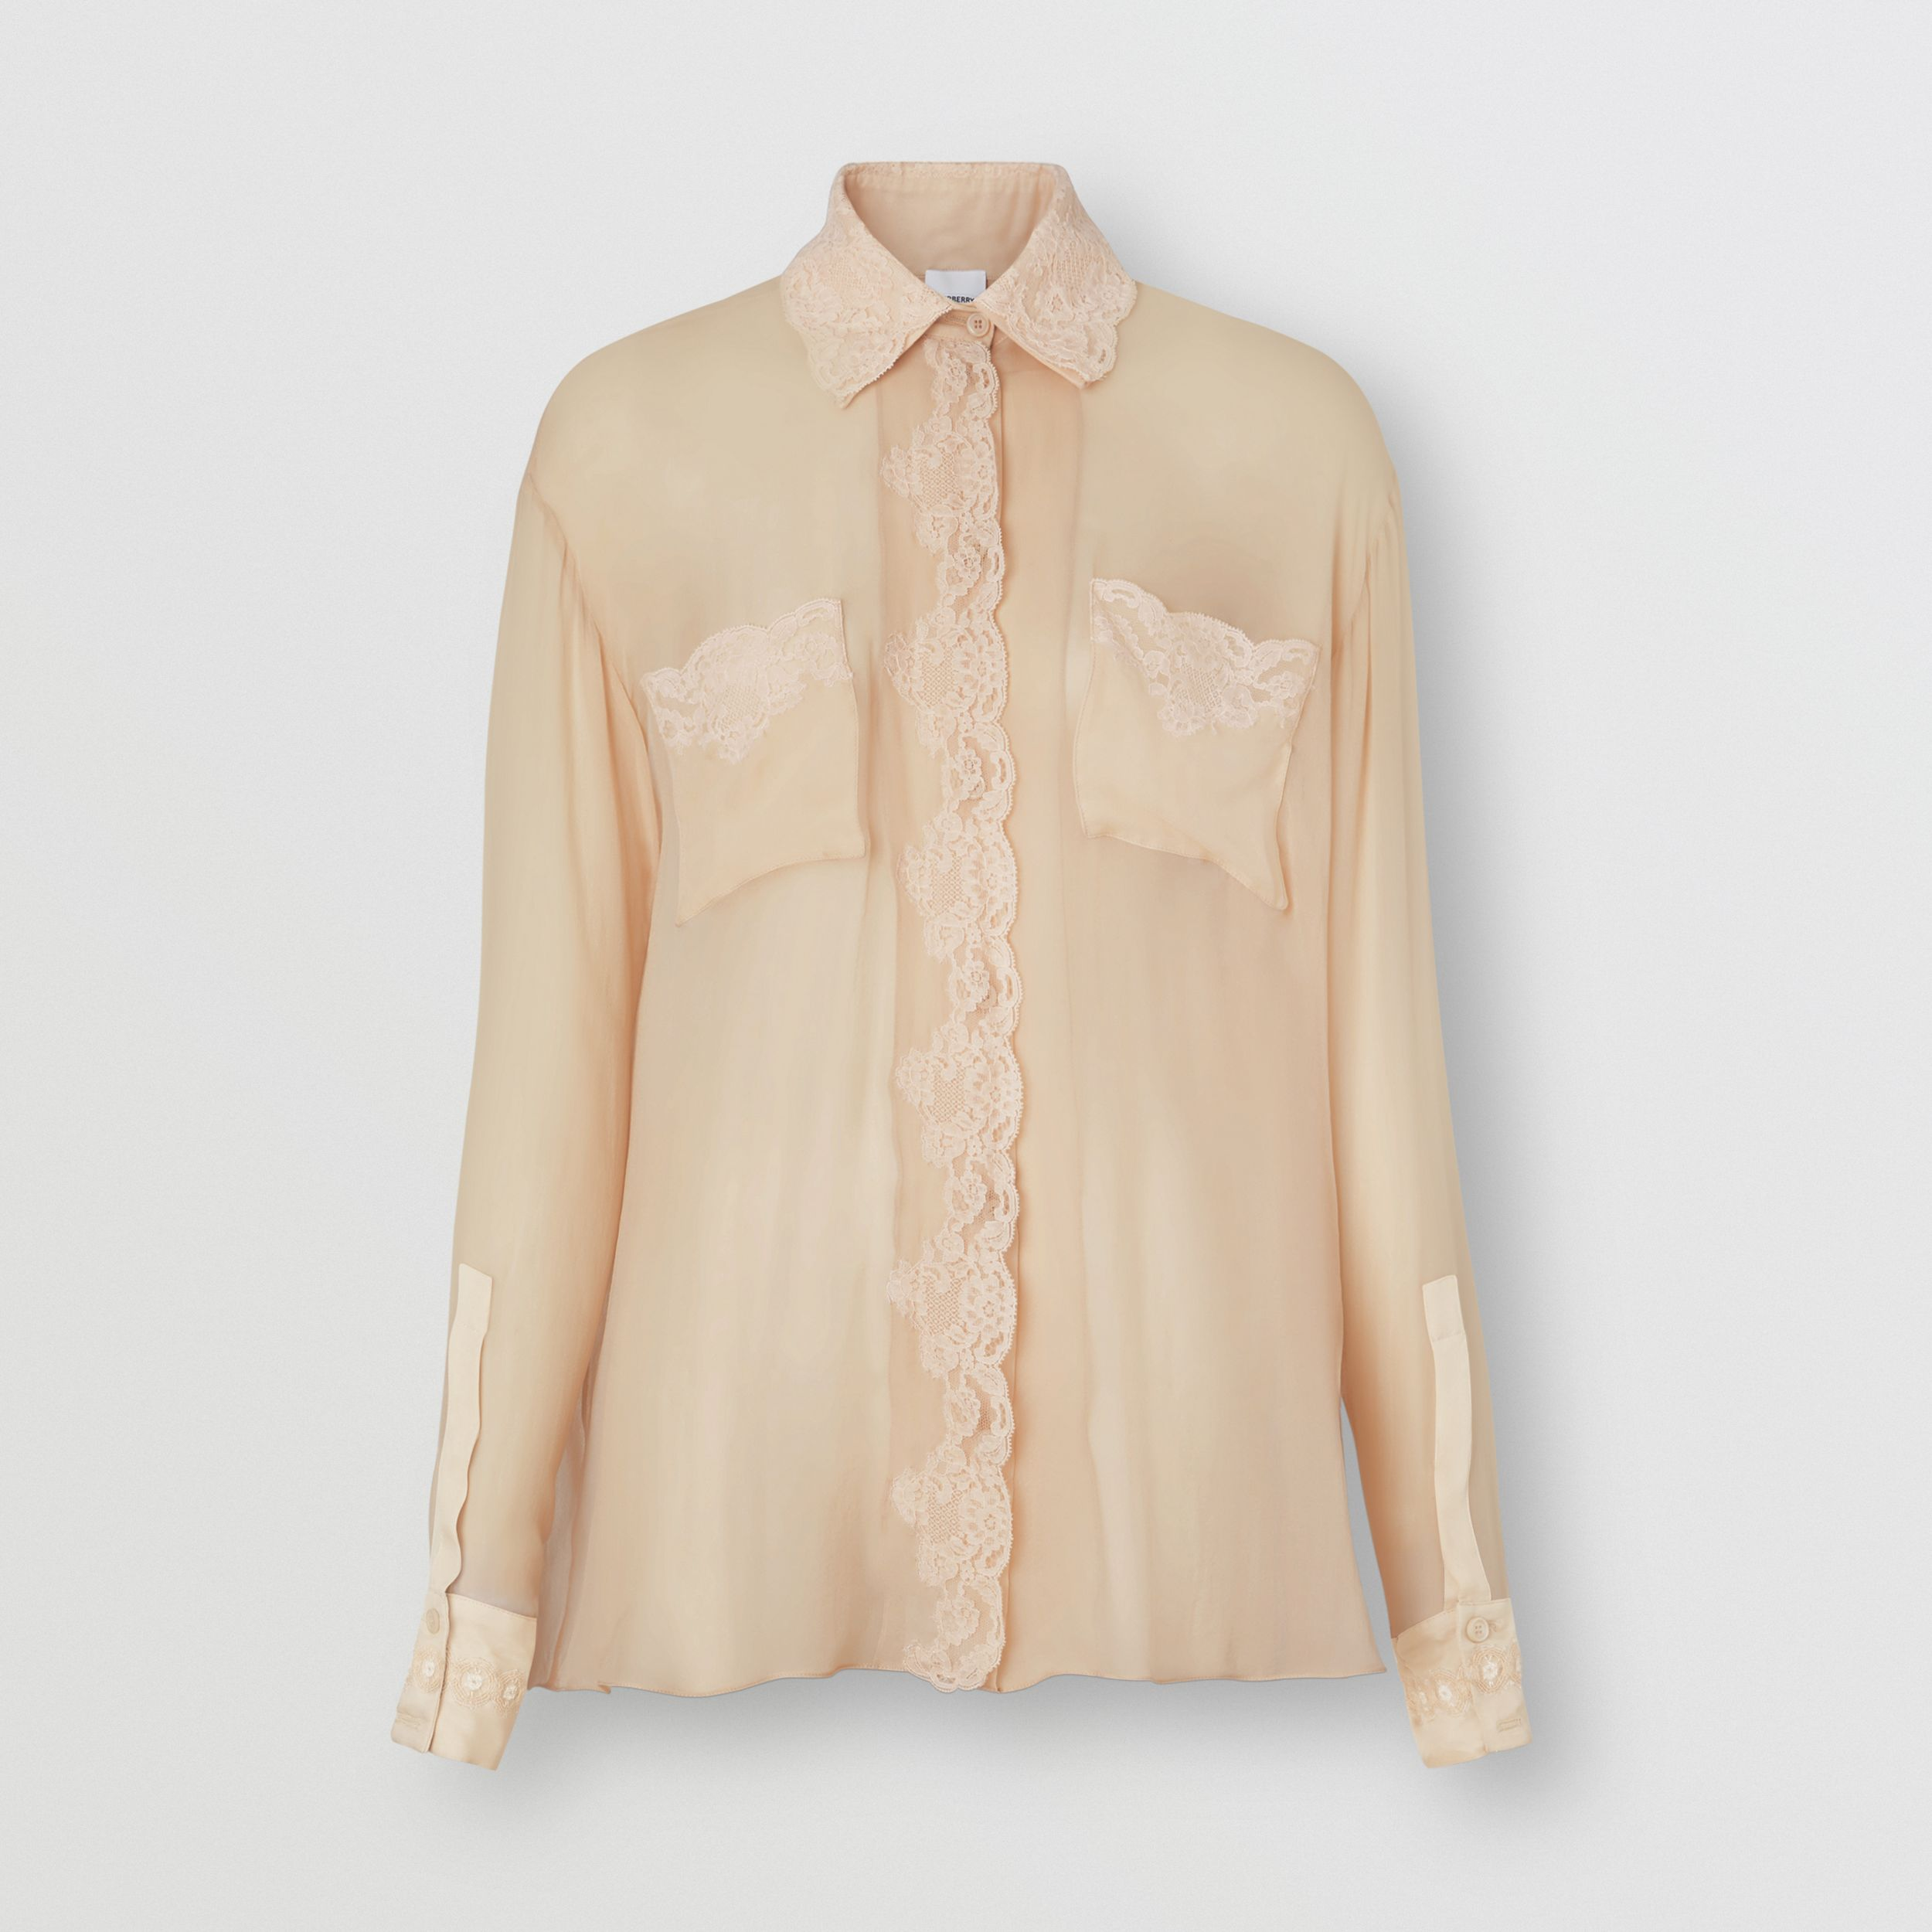 Lace Detail Silk Chiffon Oversized Shirt in Soft Peach | Burberry United States - 4